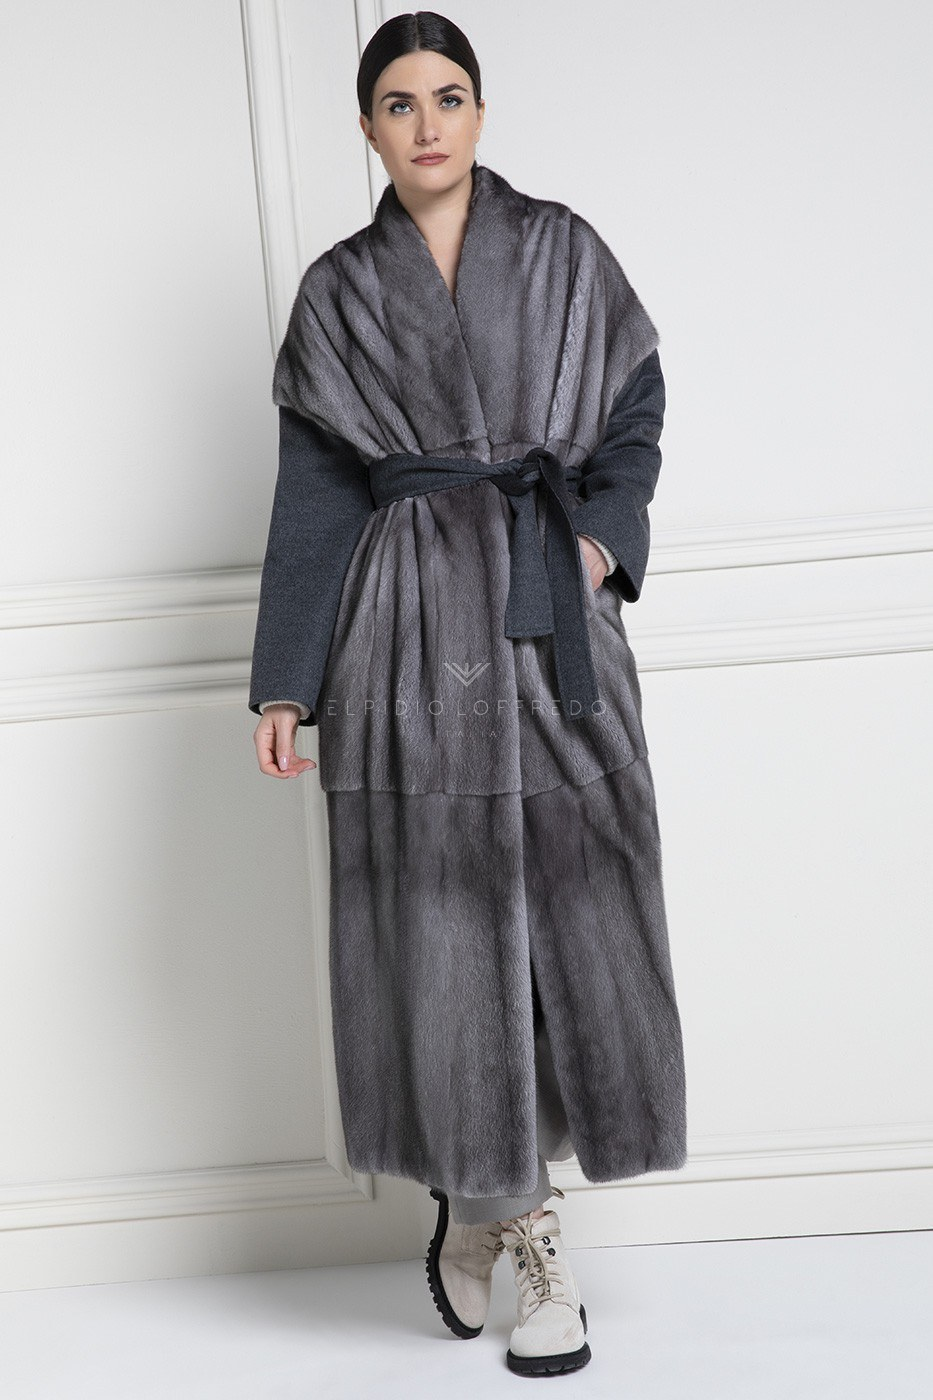 Cashmere Loro Piana with Blue Iris Mink Fur Nafa Quality - Length 130 cm